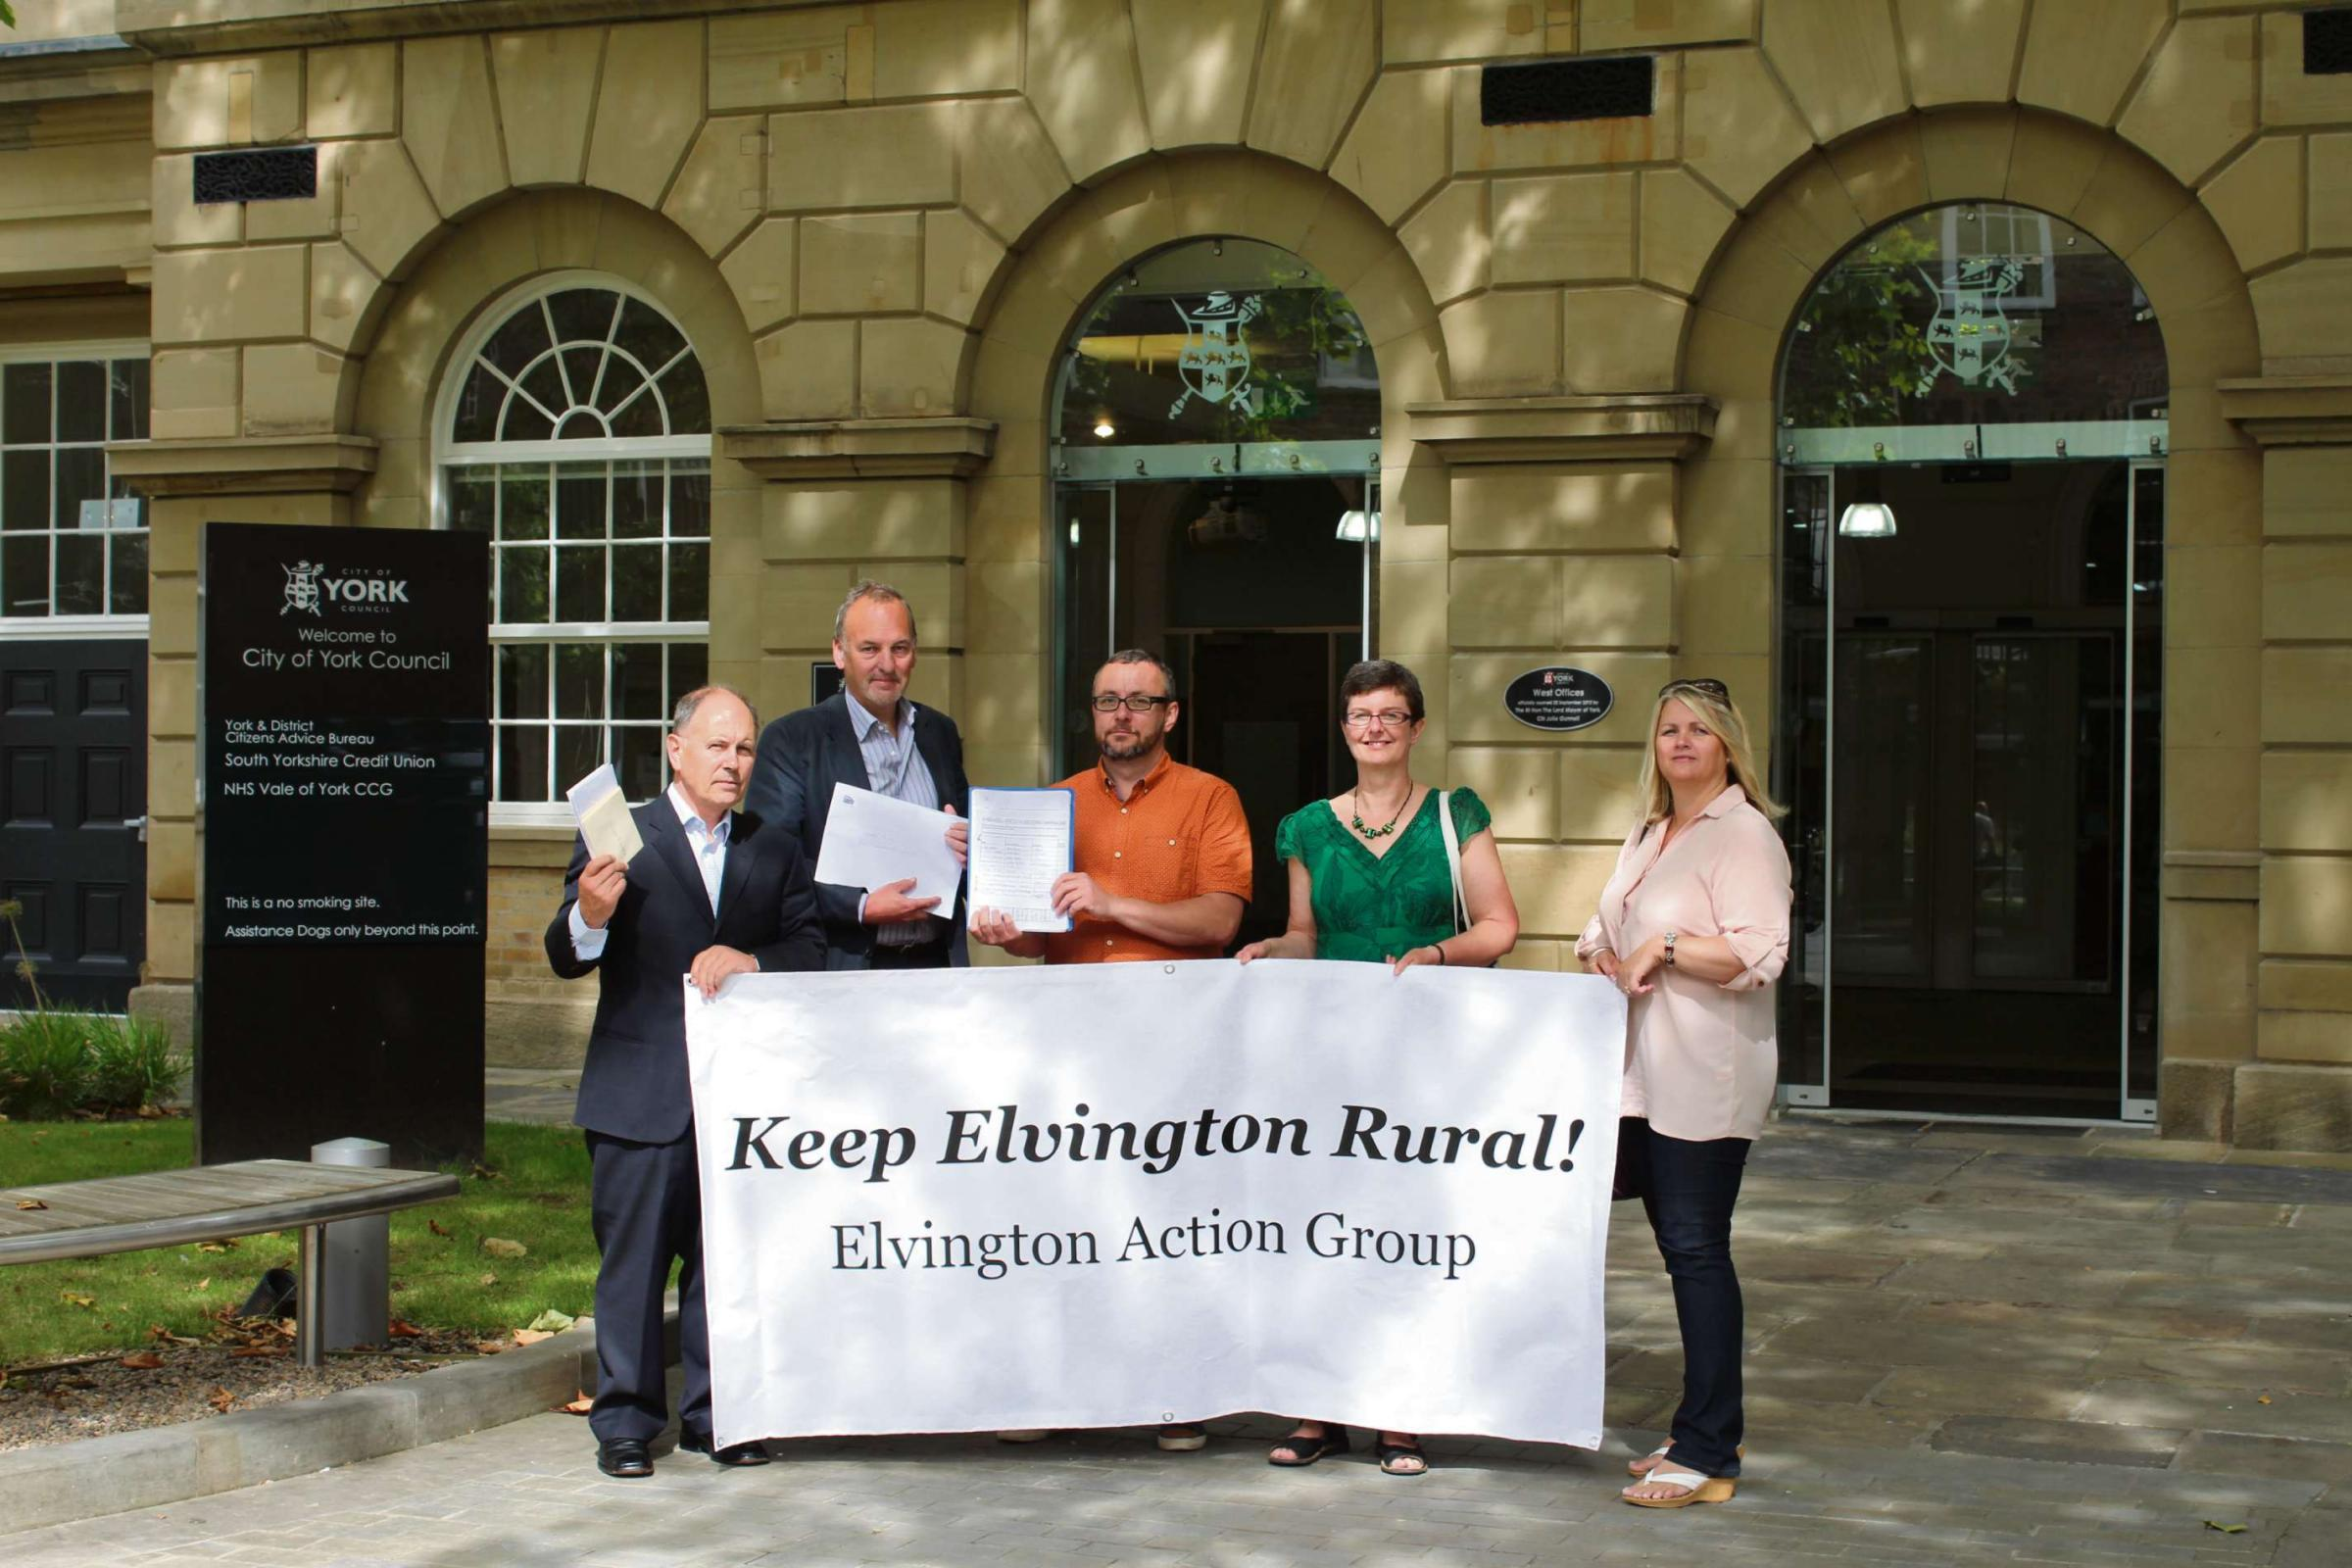 From left, Elvington campaigners, John Gallery Philip Brown, Martin Povey, Jo Wedgewood and Beverly Flatt